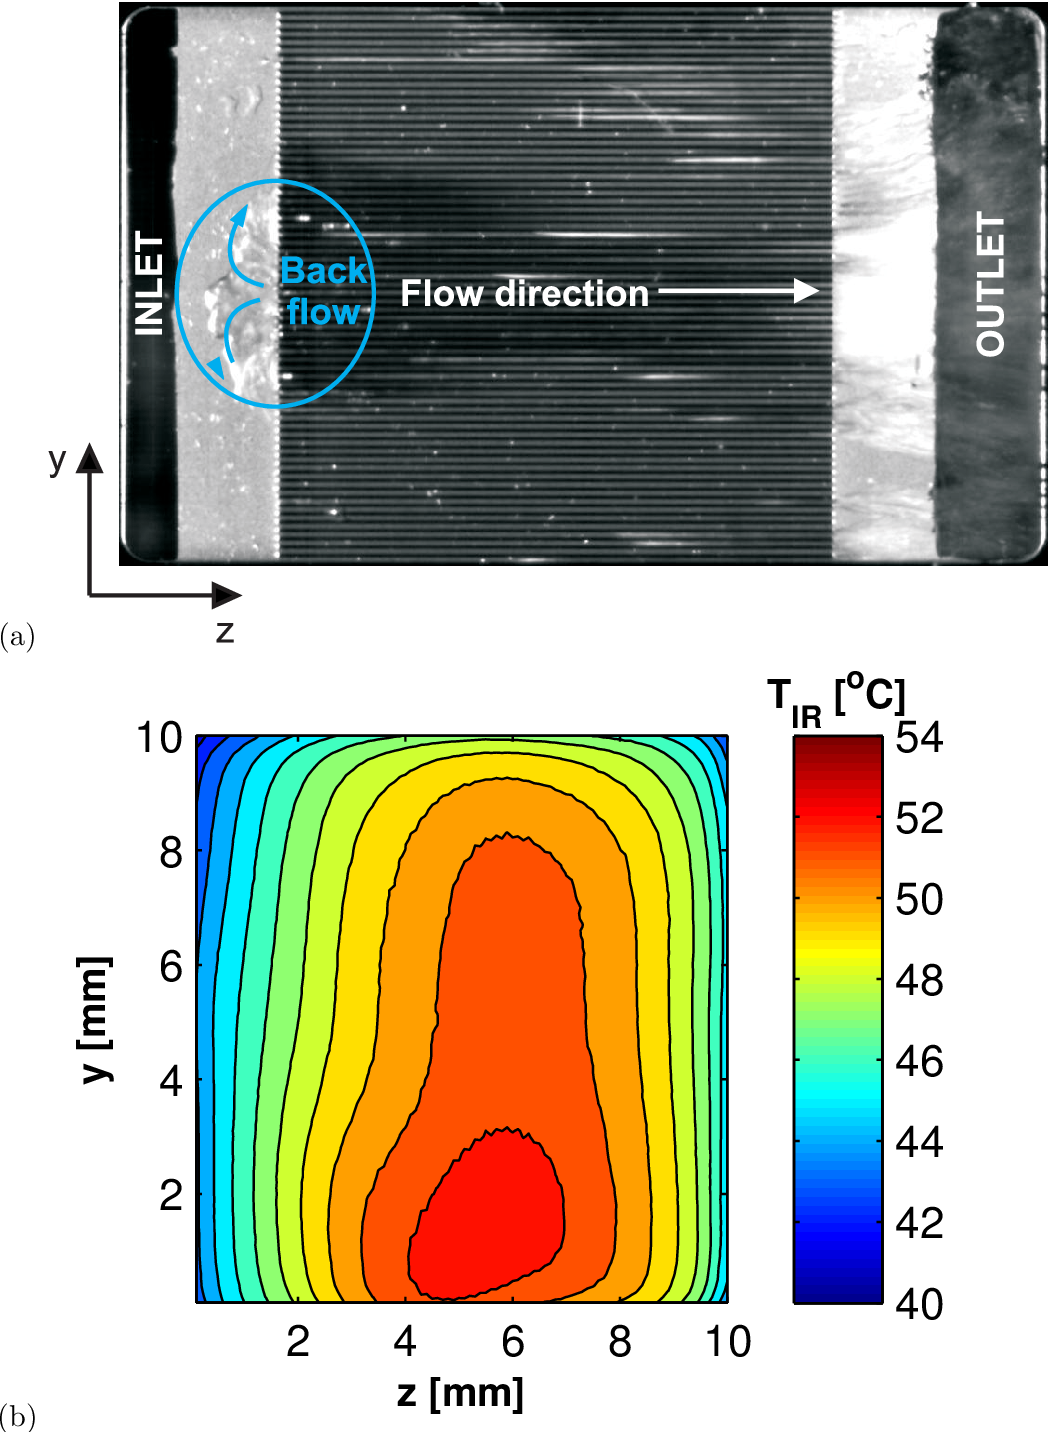 Figure 3.9: Snapshots of the high-speed flow visualization and the time-averaged IR temperature maps of the test section's base provided by the two-phase flow boiling of R245fa for Gch=2'035 kgm−2 s−1 and qb=36.5Wcm−2: (a), (b) without any inlet restrictions, and (c), (d) with the 50µm-wide, 100µm-deep, and 100µm-long inlet micro-orifices (Szczukiewicz et al., 2012b). The flow is from left to right. The figure continues over pp. 39 – 40.